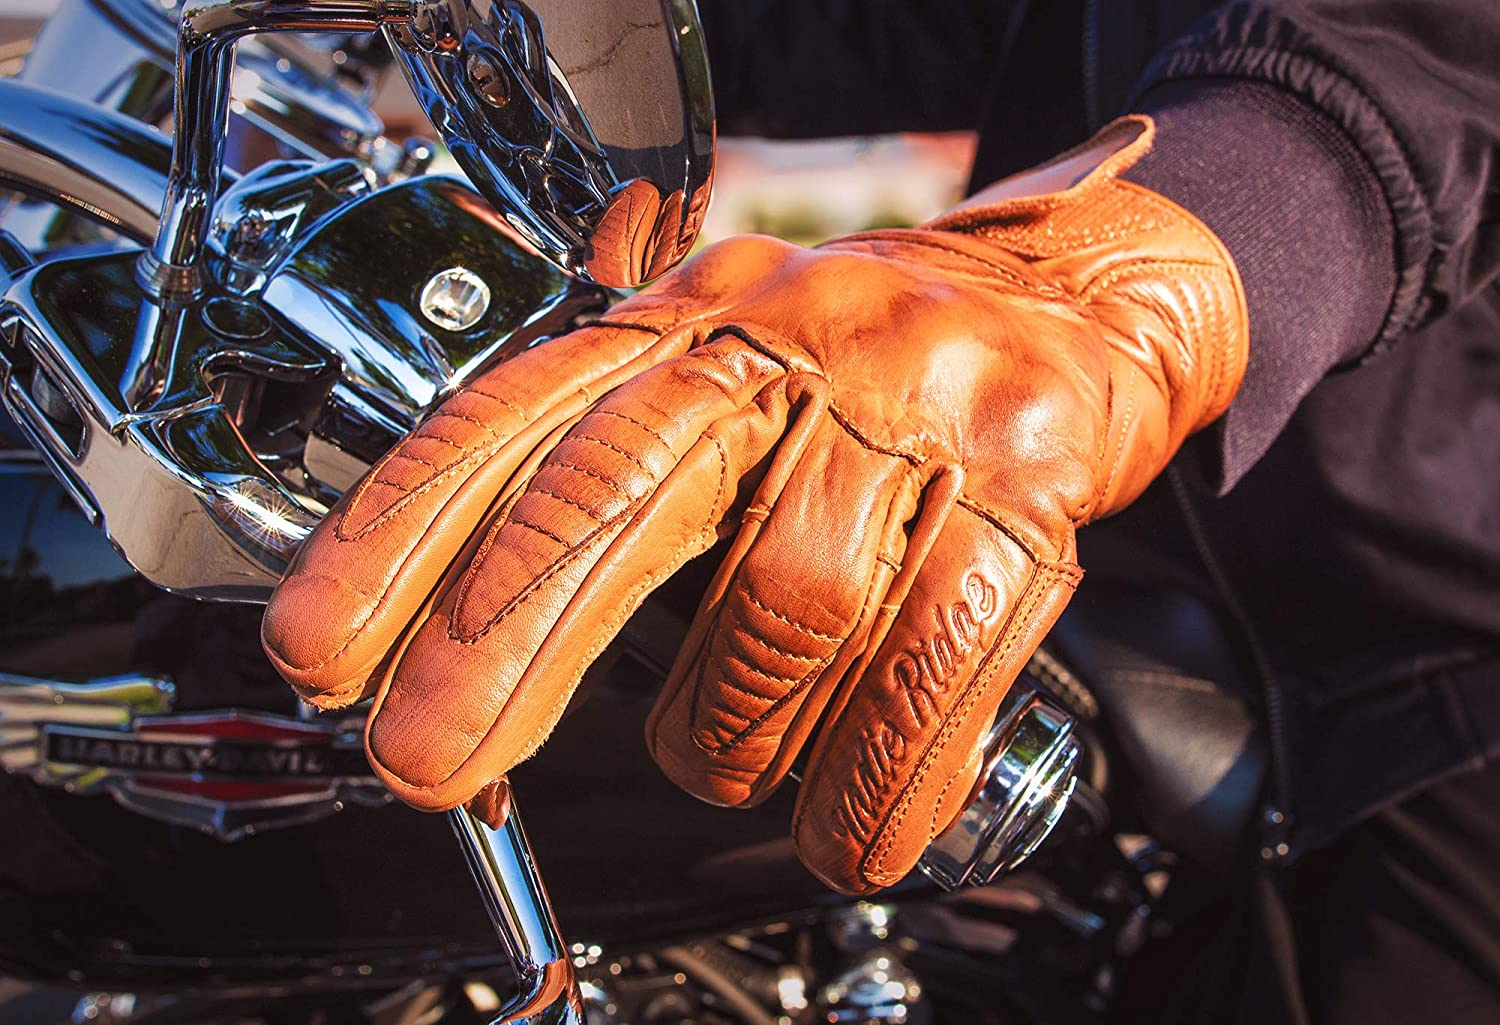 Cool Half Gauntlet with Mobile Touchscreen Premium Leather Motorcycle Gloves Cafe Racer Large Camel Comfortable Riding Protection